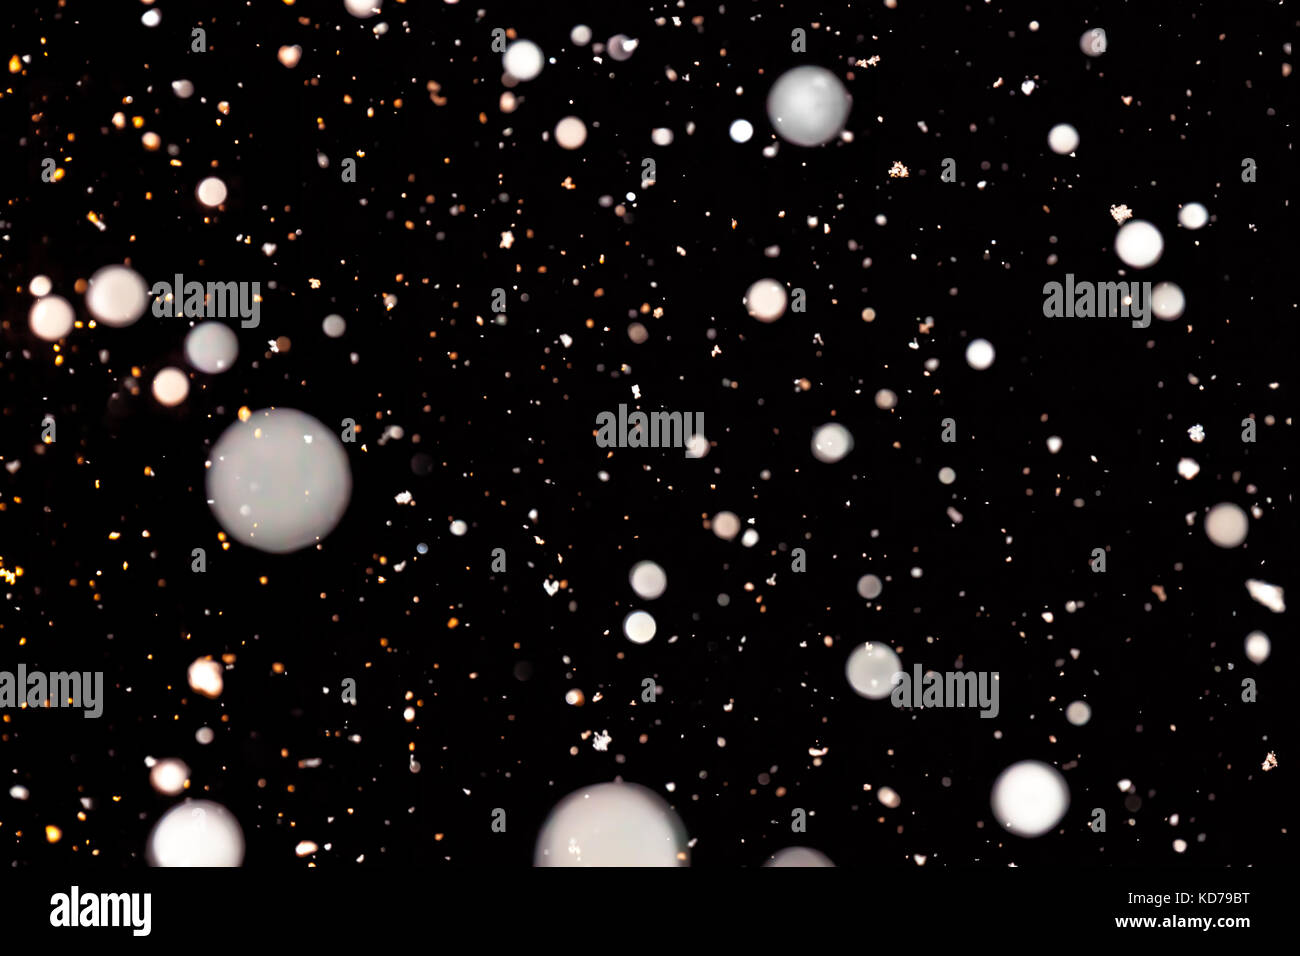 abstract background of falling snow. white snowflakes on a black background. design element - Stock Image